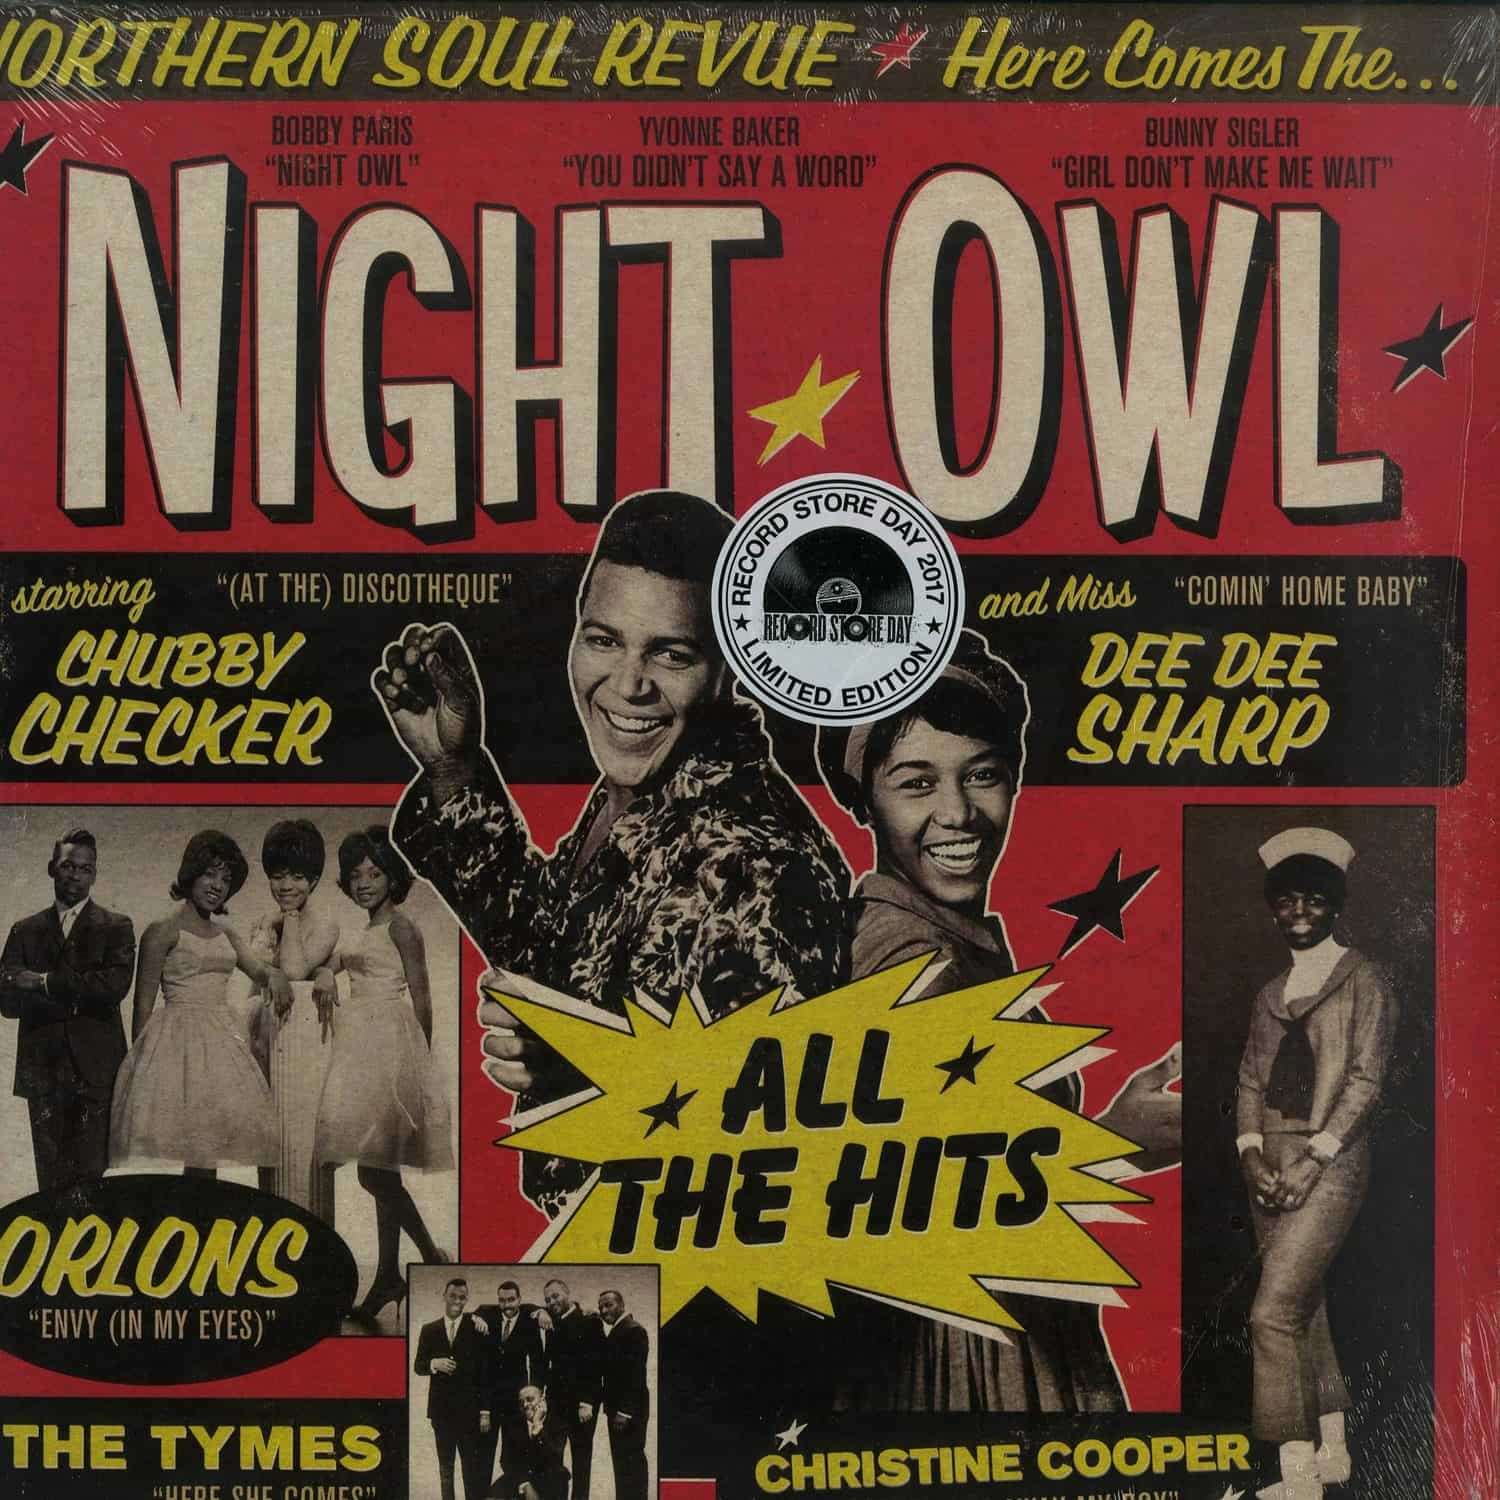 Various Artists - HERE COMES THE NIGHT OWL